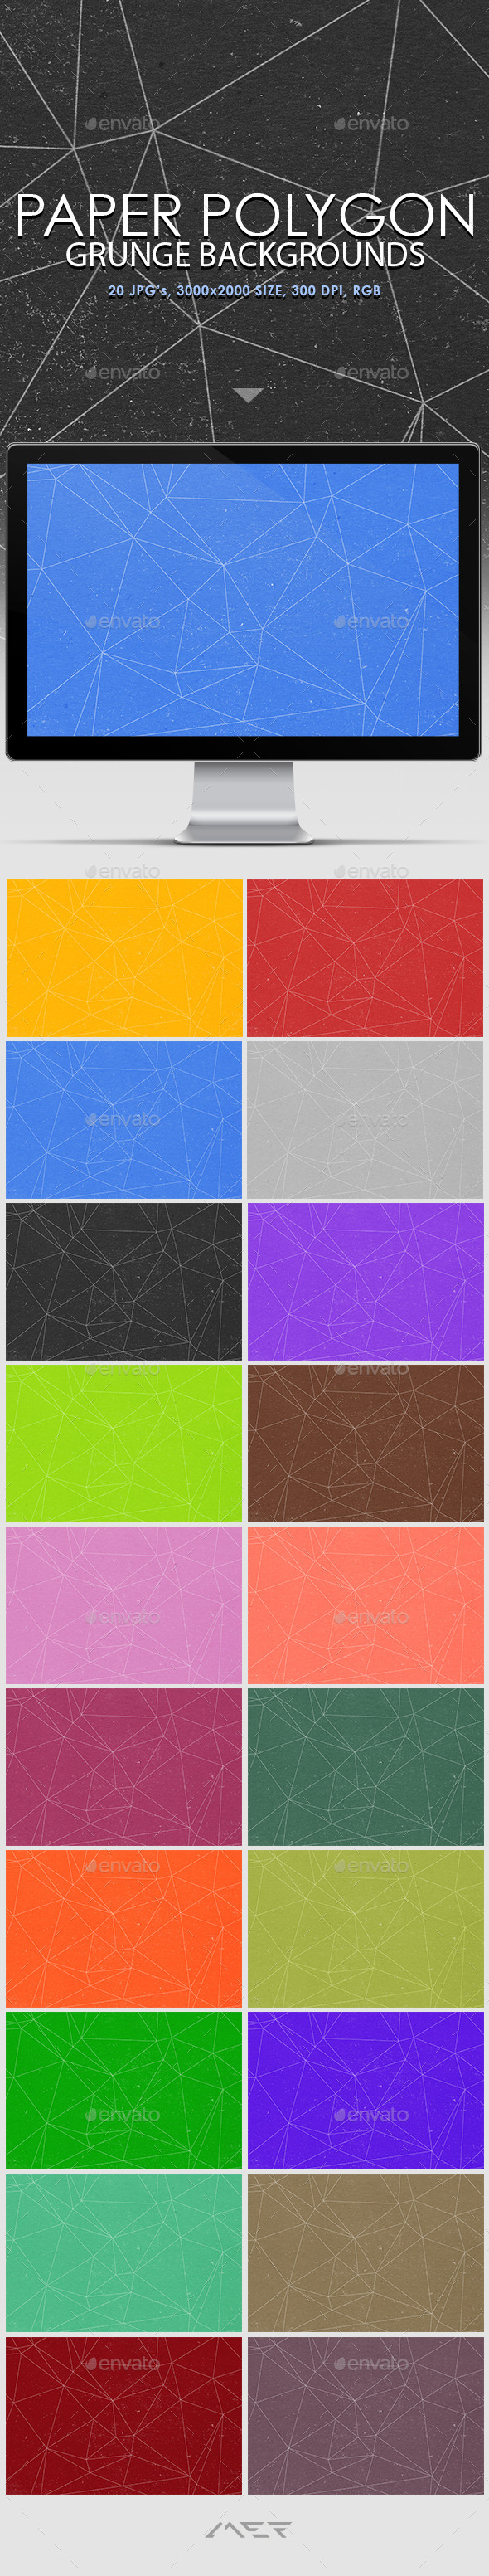 GraphicRiver Paper Polygon Grunge Backgrounds 10639791